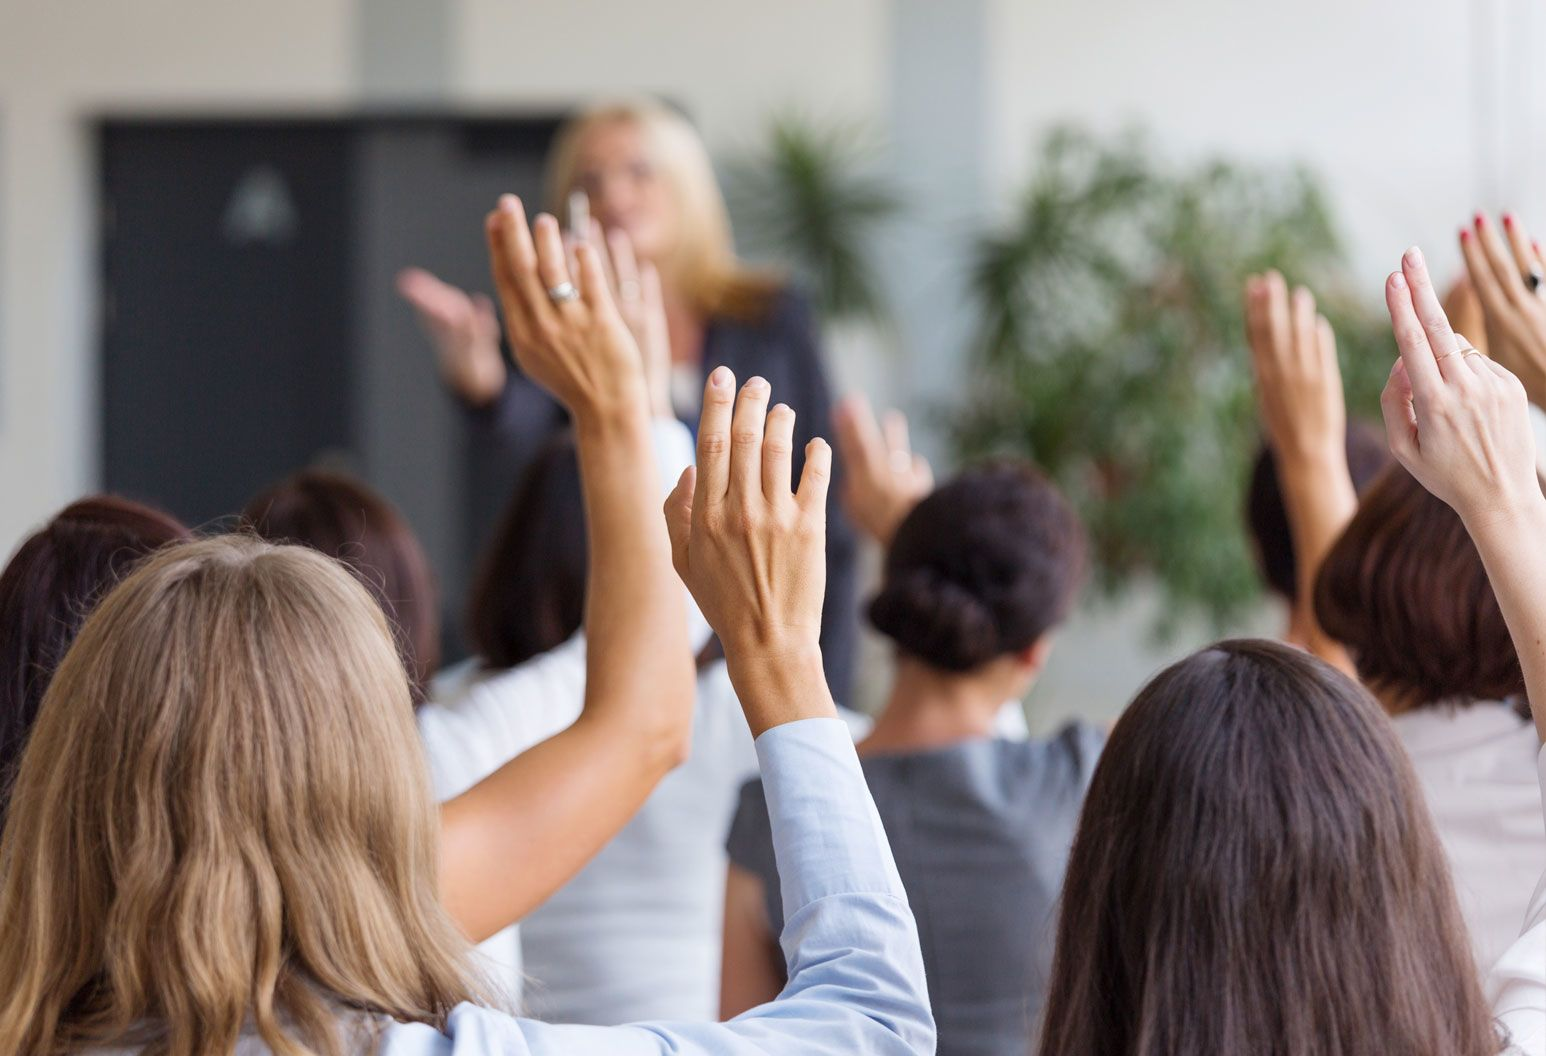 Blurred in the background, a woman stands in front of a class, teaching. In focus in the foreground the people in the class stand with their hands held up, doing an exercise.